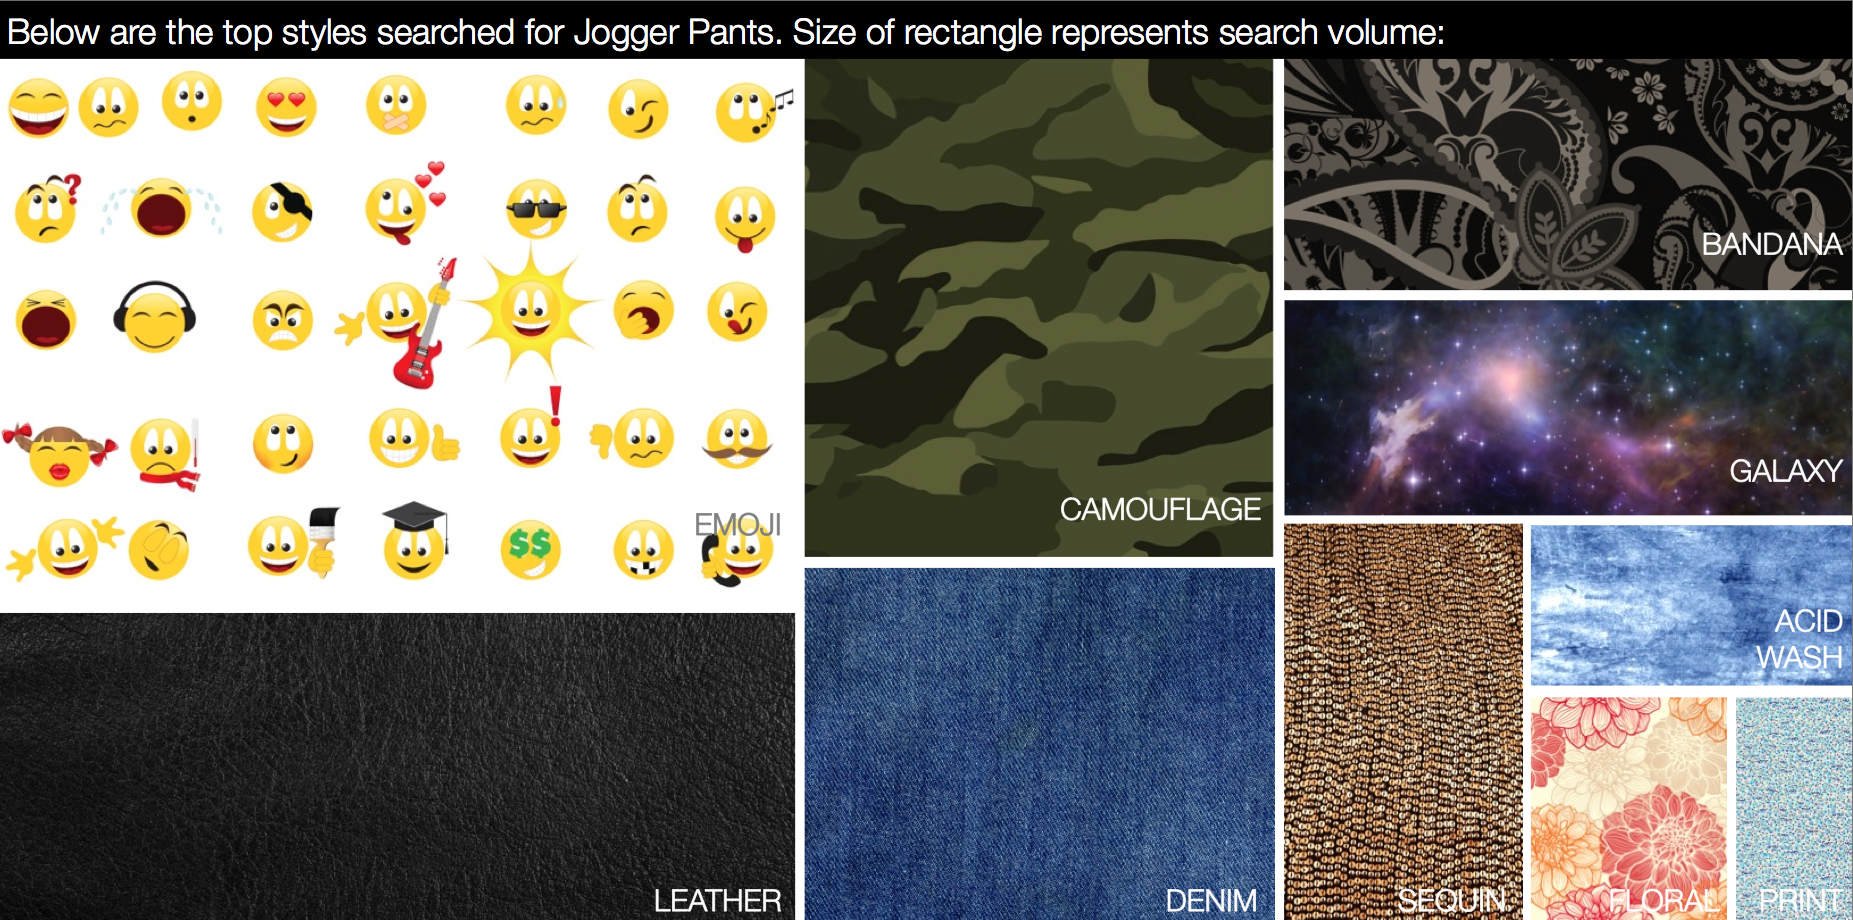 Top styles of jogger pants searched on Google